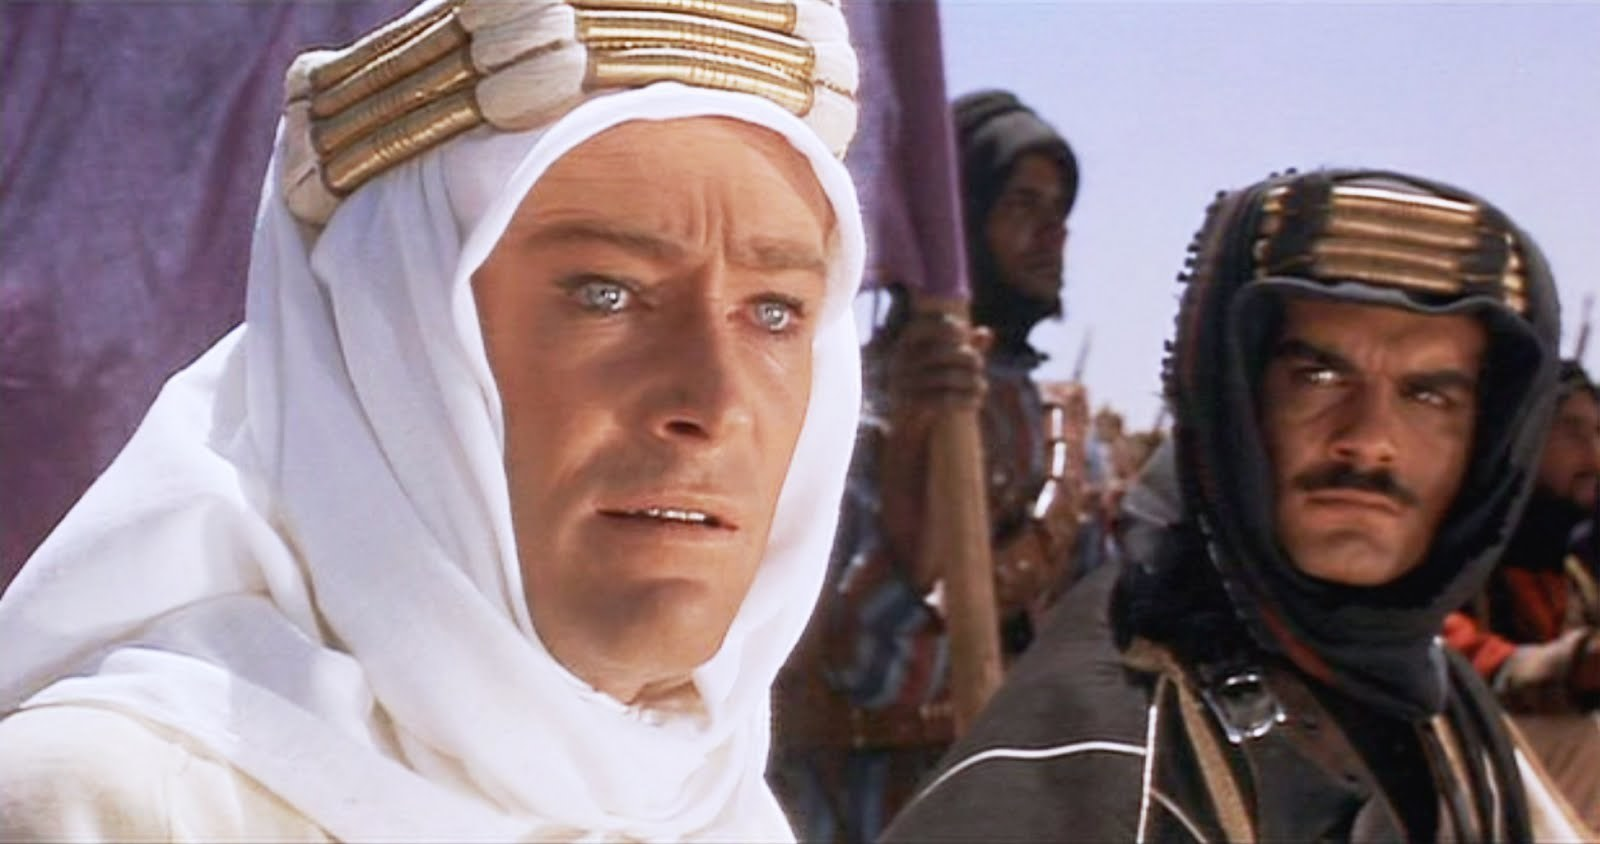 'Lawrence de Arabia', de David Lean